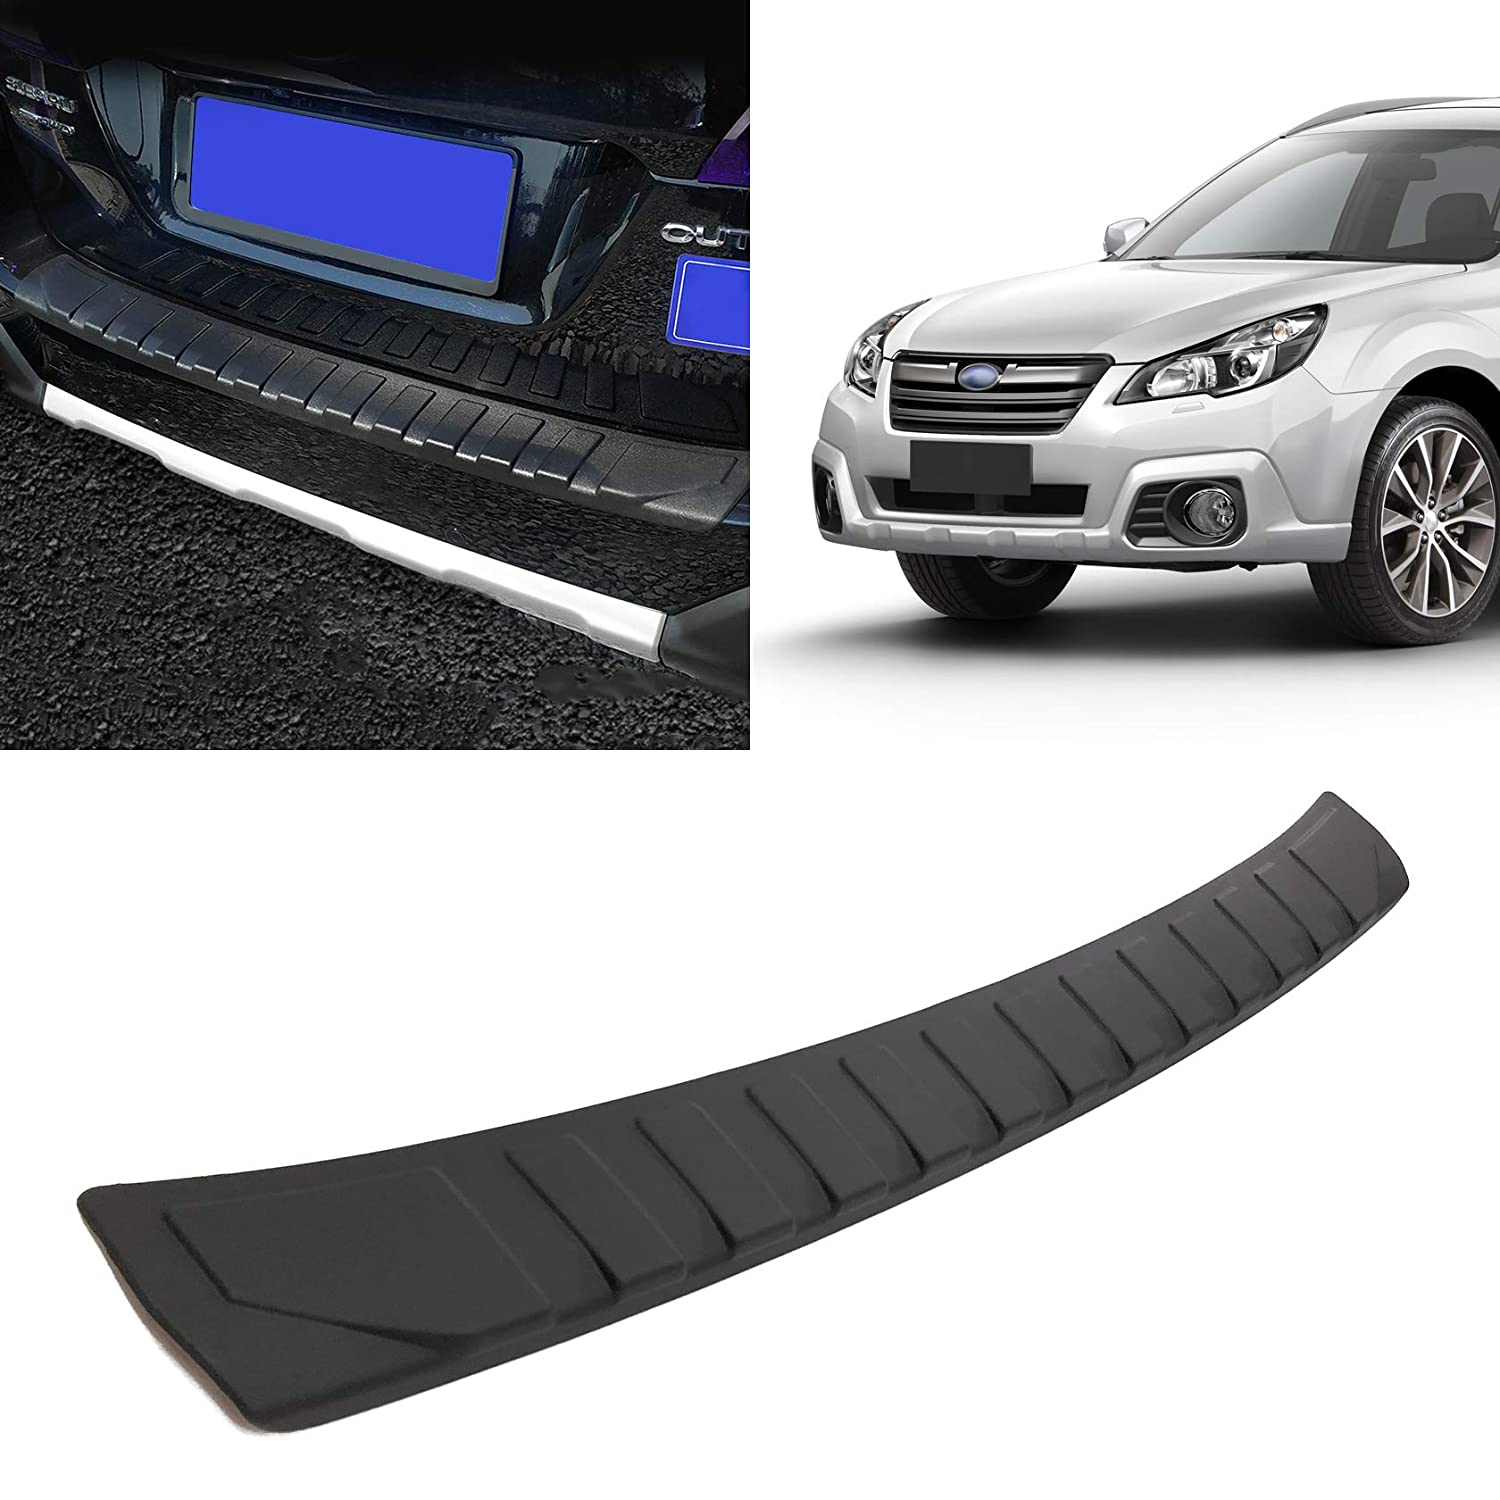 Toryea Rear Bumper Protector Guard Accessory Trim Cover Fit Subaru Outback 2015 2016 2017 2018 2019